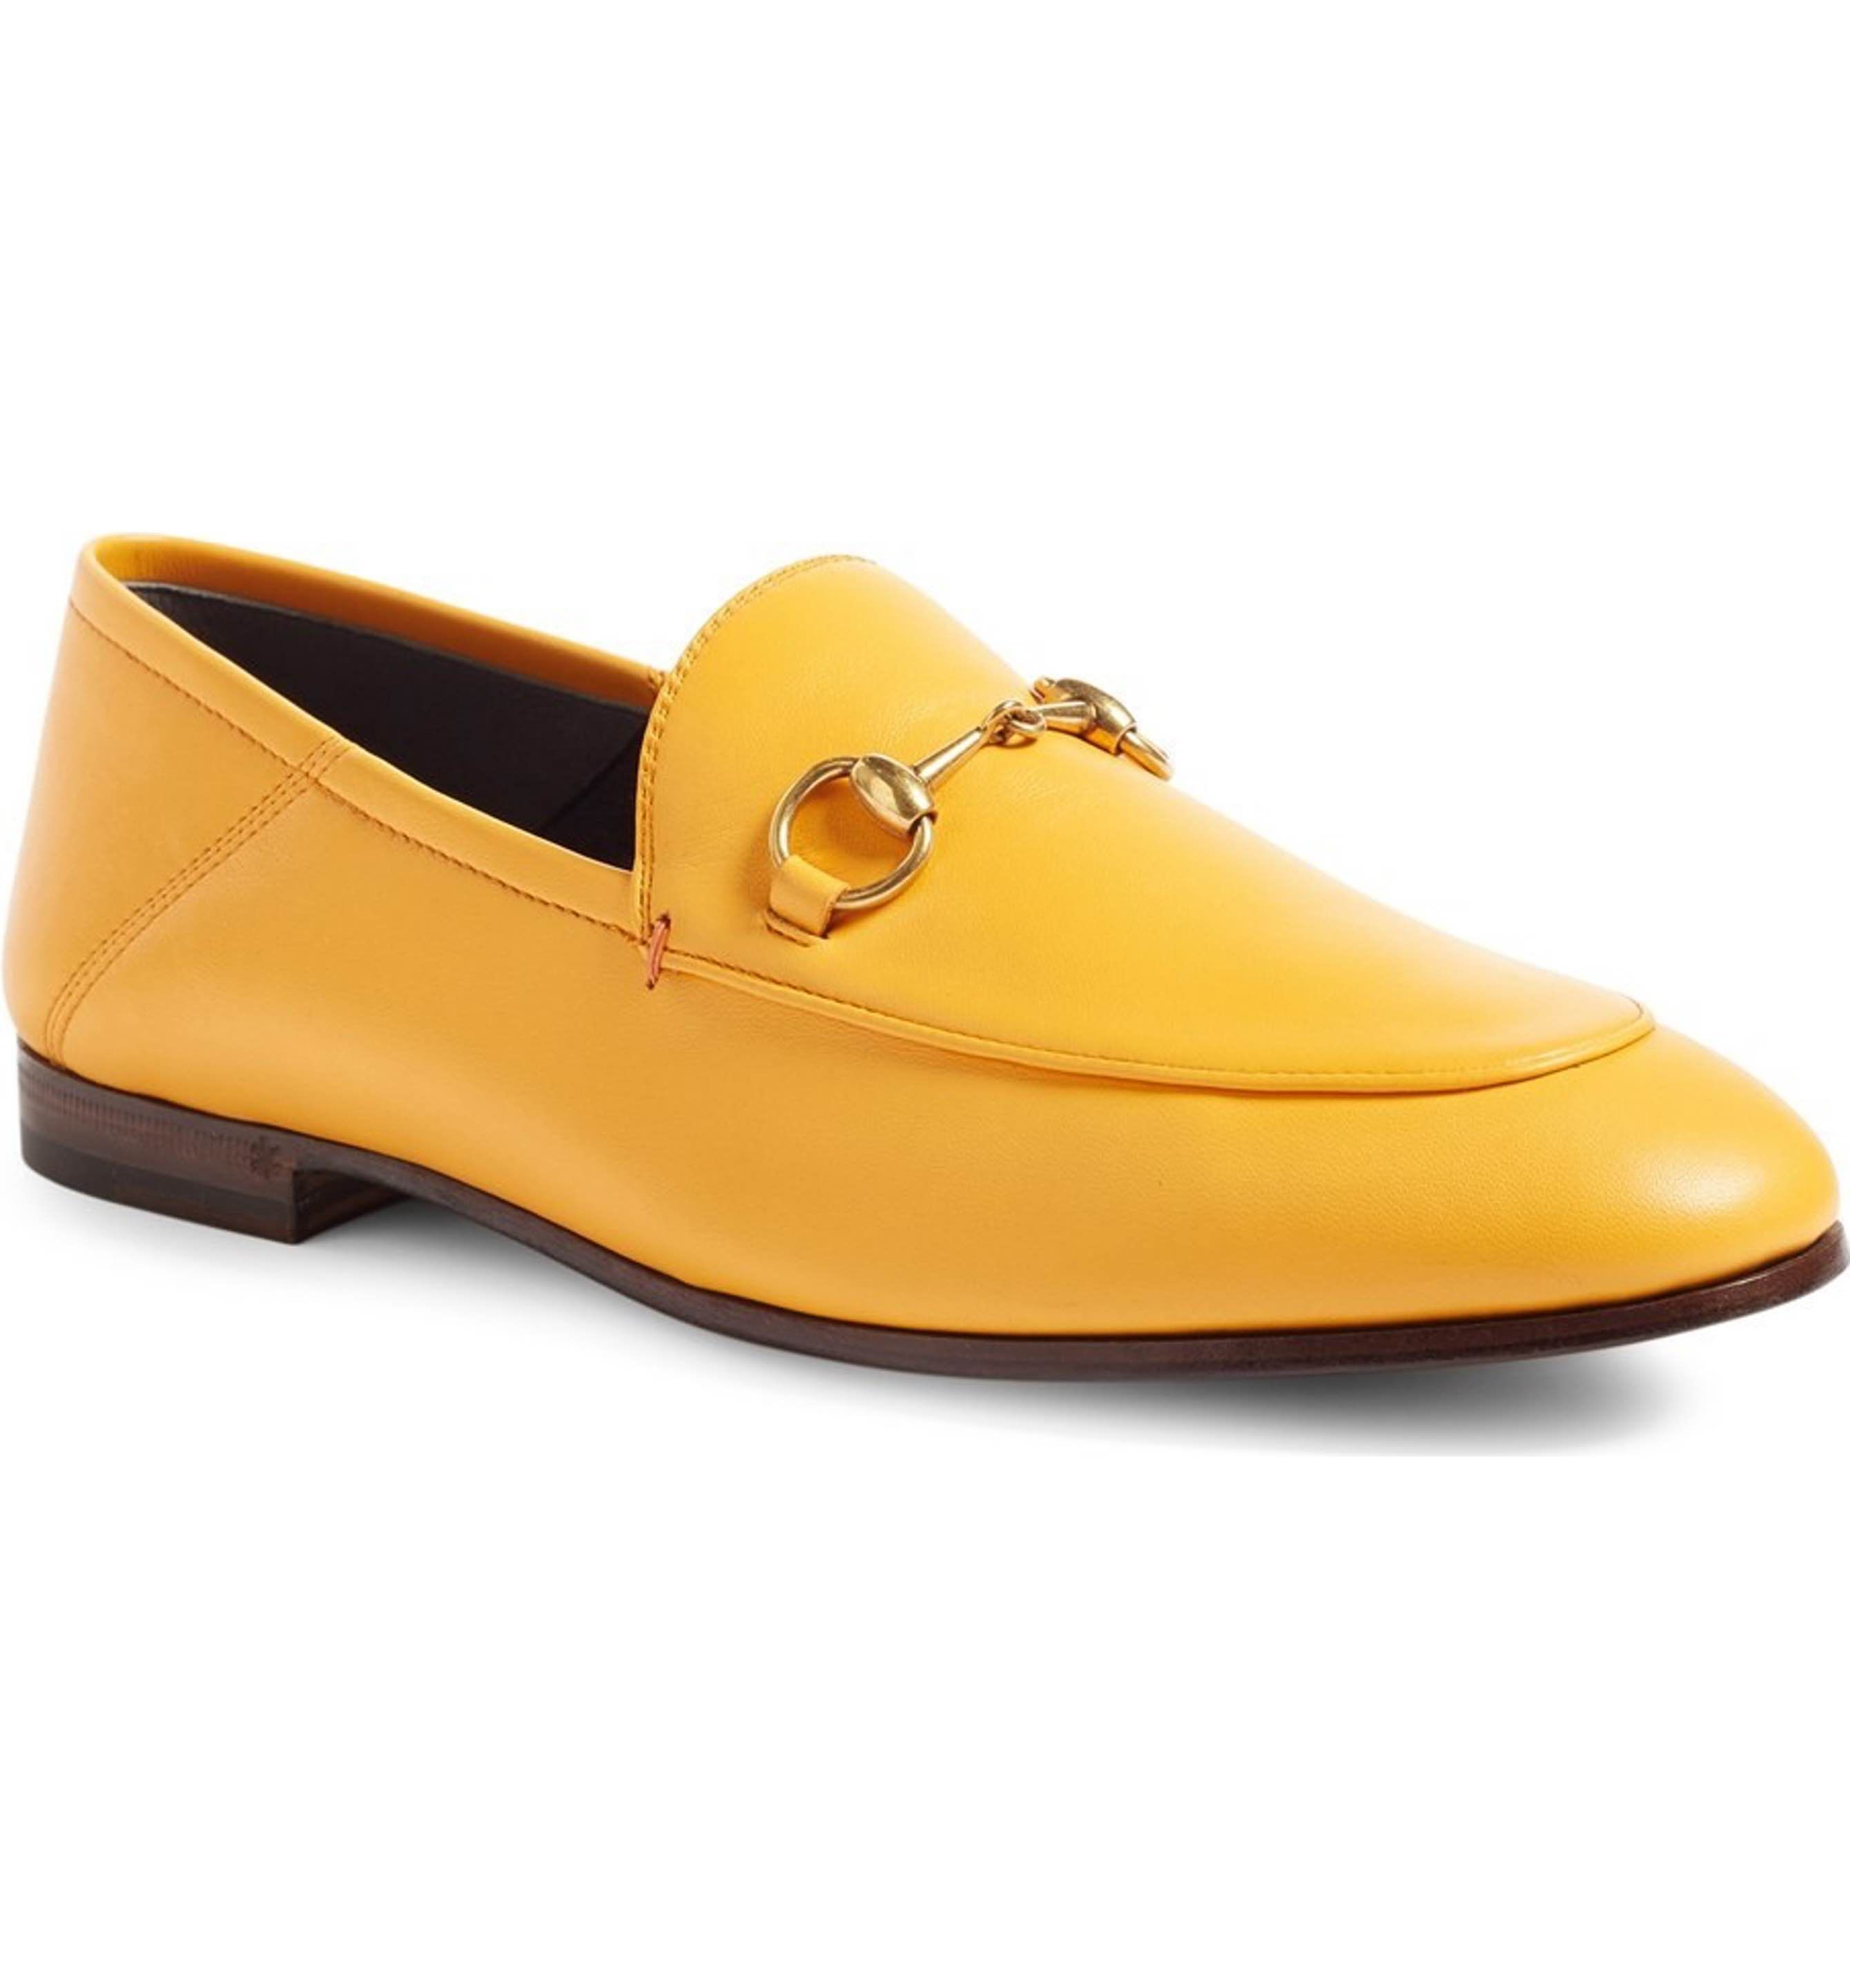 Loafers for women, Gucci brixton loafer